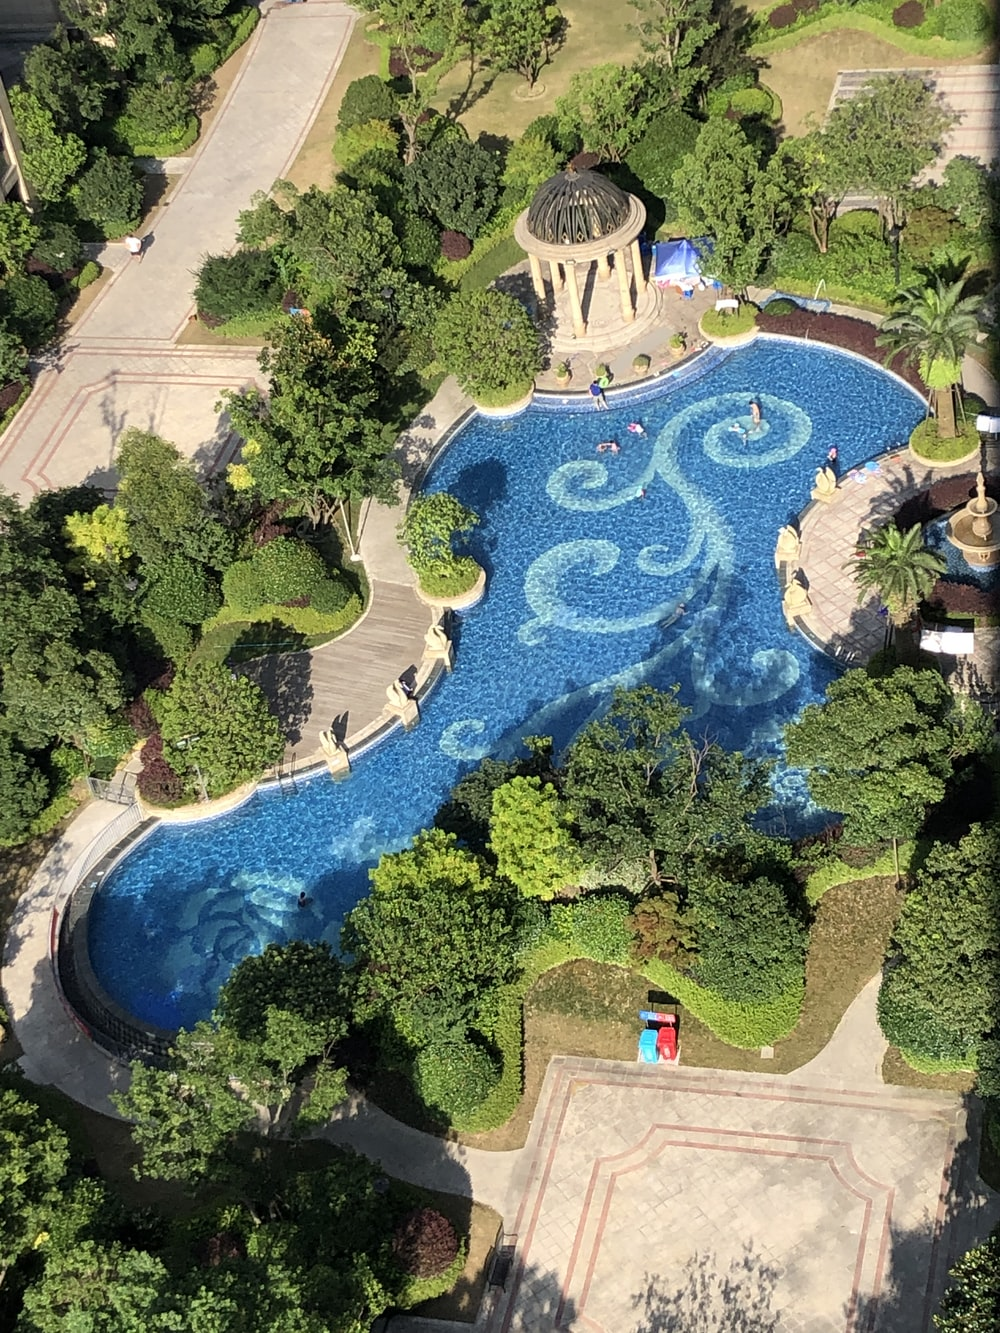 large blue and white pool surrounded by green trees at daytime